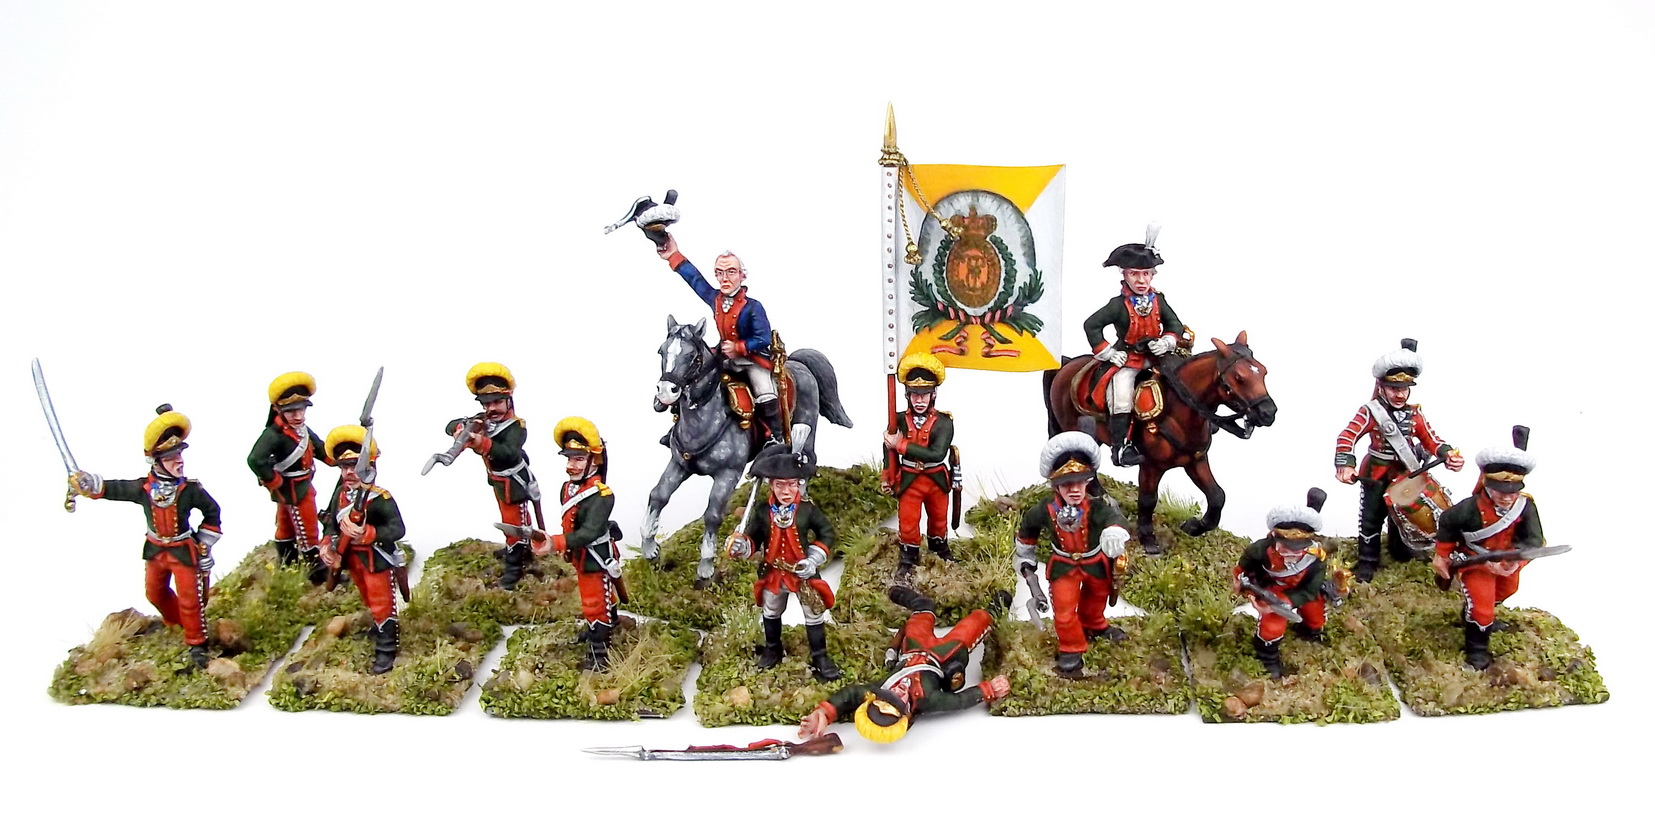 Figures: A.V.Suvorov and his bogatyrs, photo #37